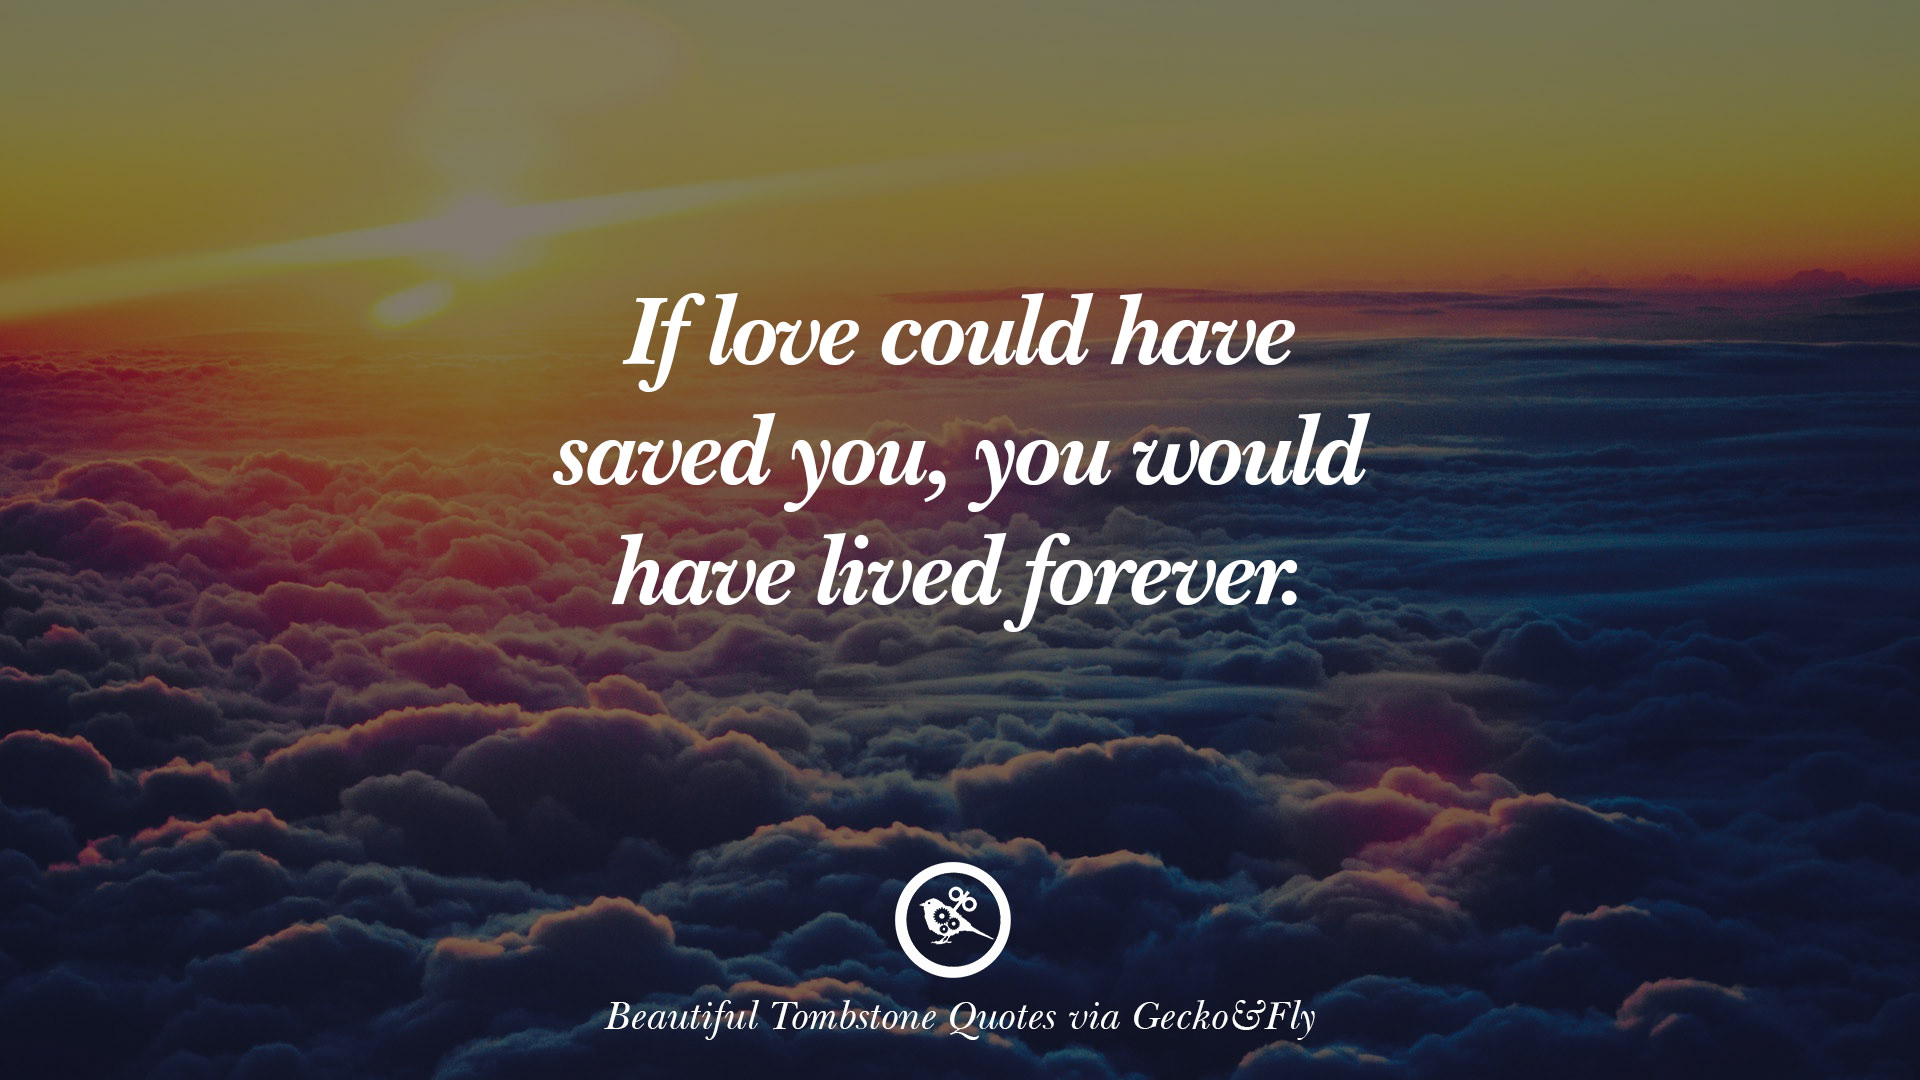 Gone But Not Forgotten Quotes 12 Beautiful Tombstone Quotes For Your Beloved Cat Or Dog